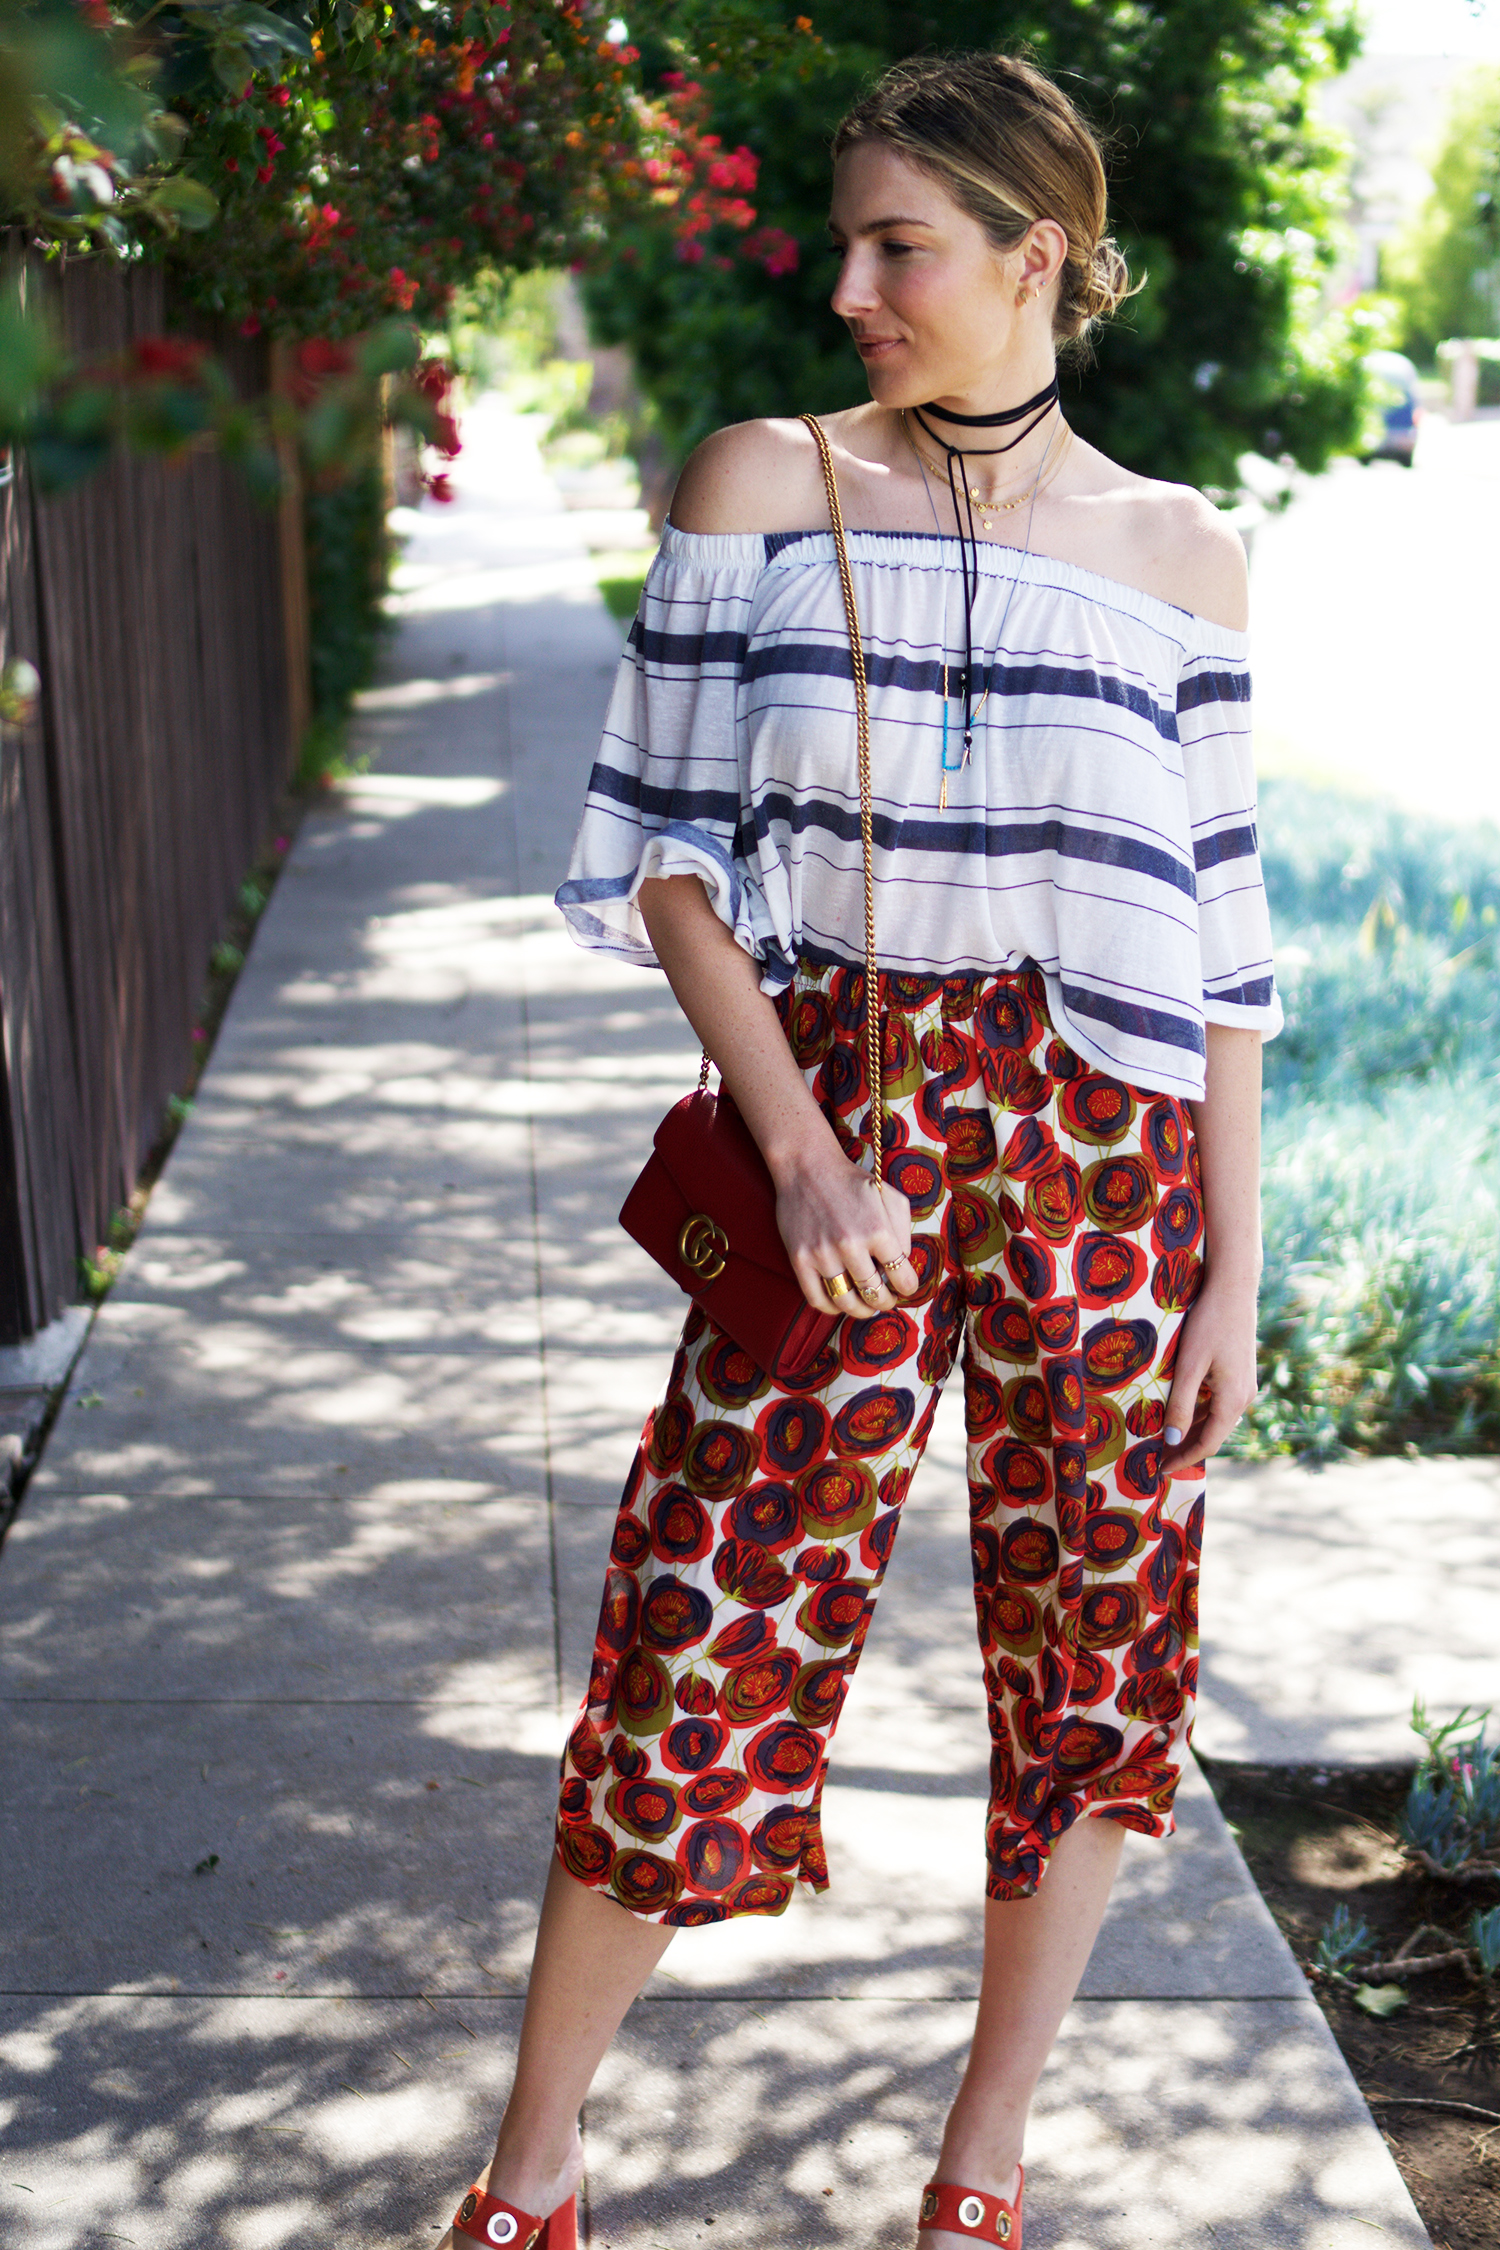 off-the-shoulder-tops-culottes-kimberly-rabbit4.jpg